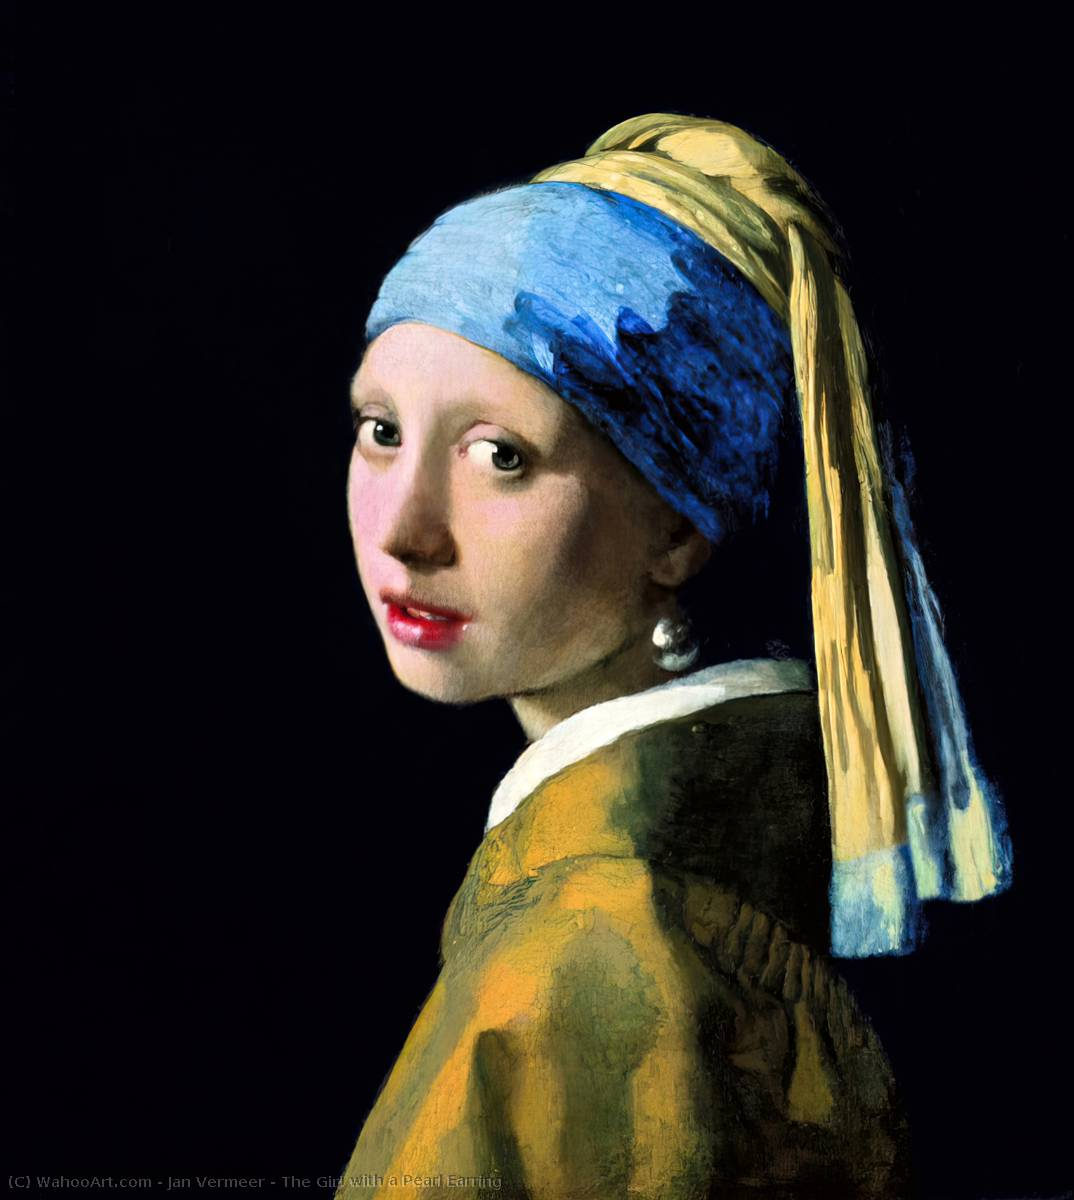 Order Oil Painting : The Girl with a Pearl Earring by Jan Vermeer | AllPaintingsStore.com